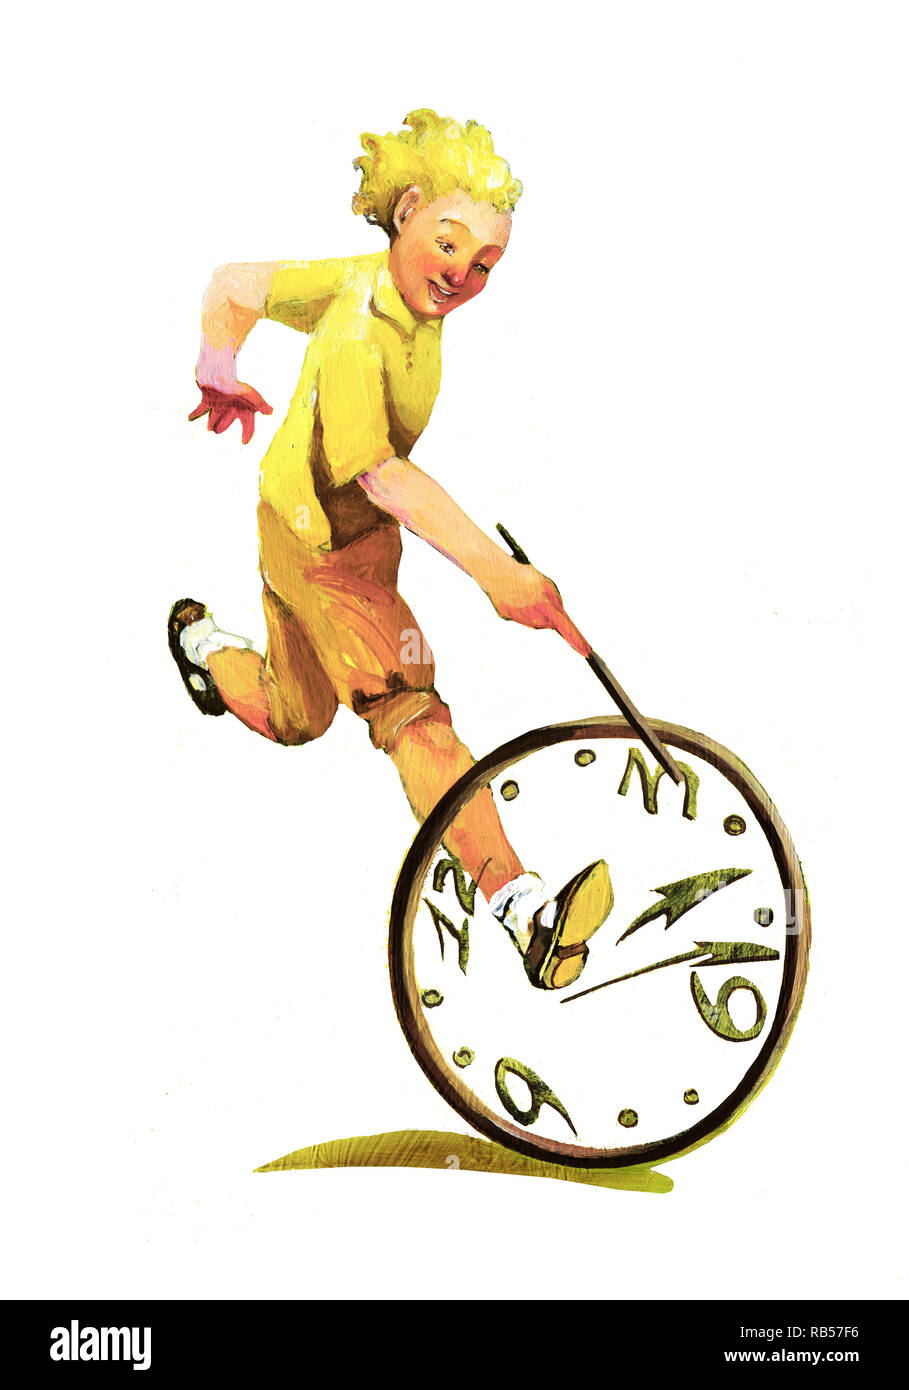 boy races with the circle for him the time is a very beautiful and simple game - Stock Image